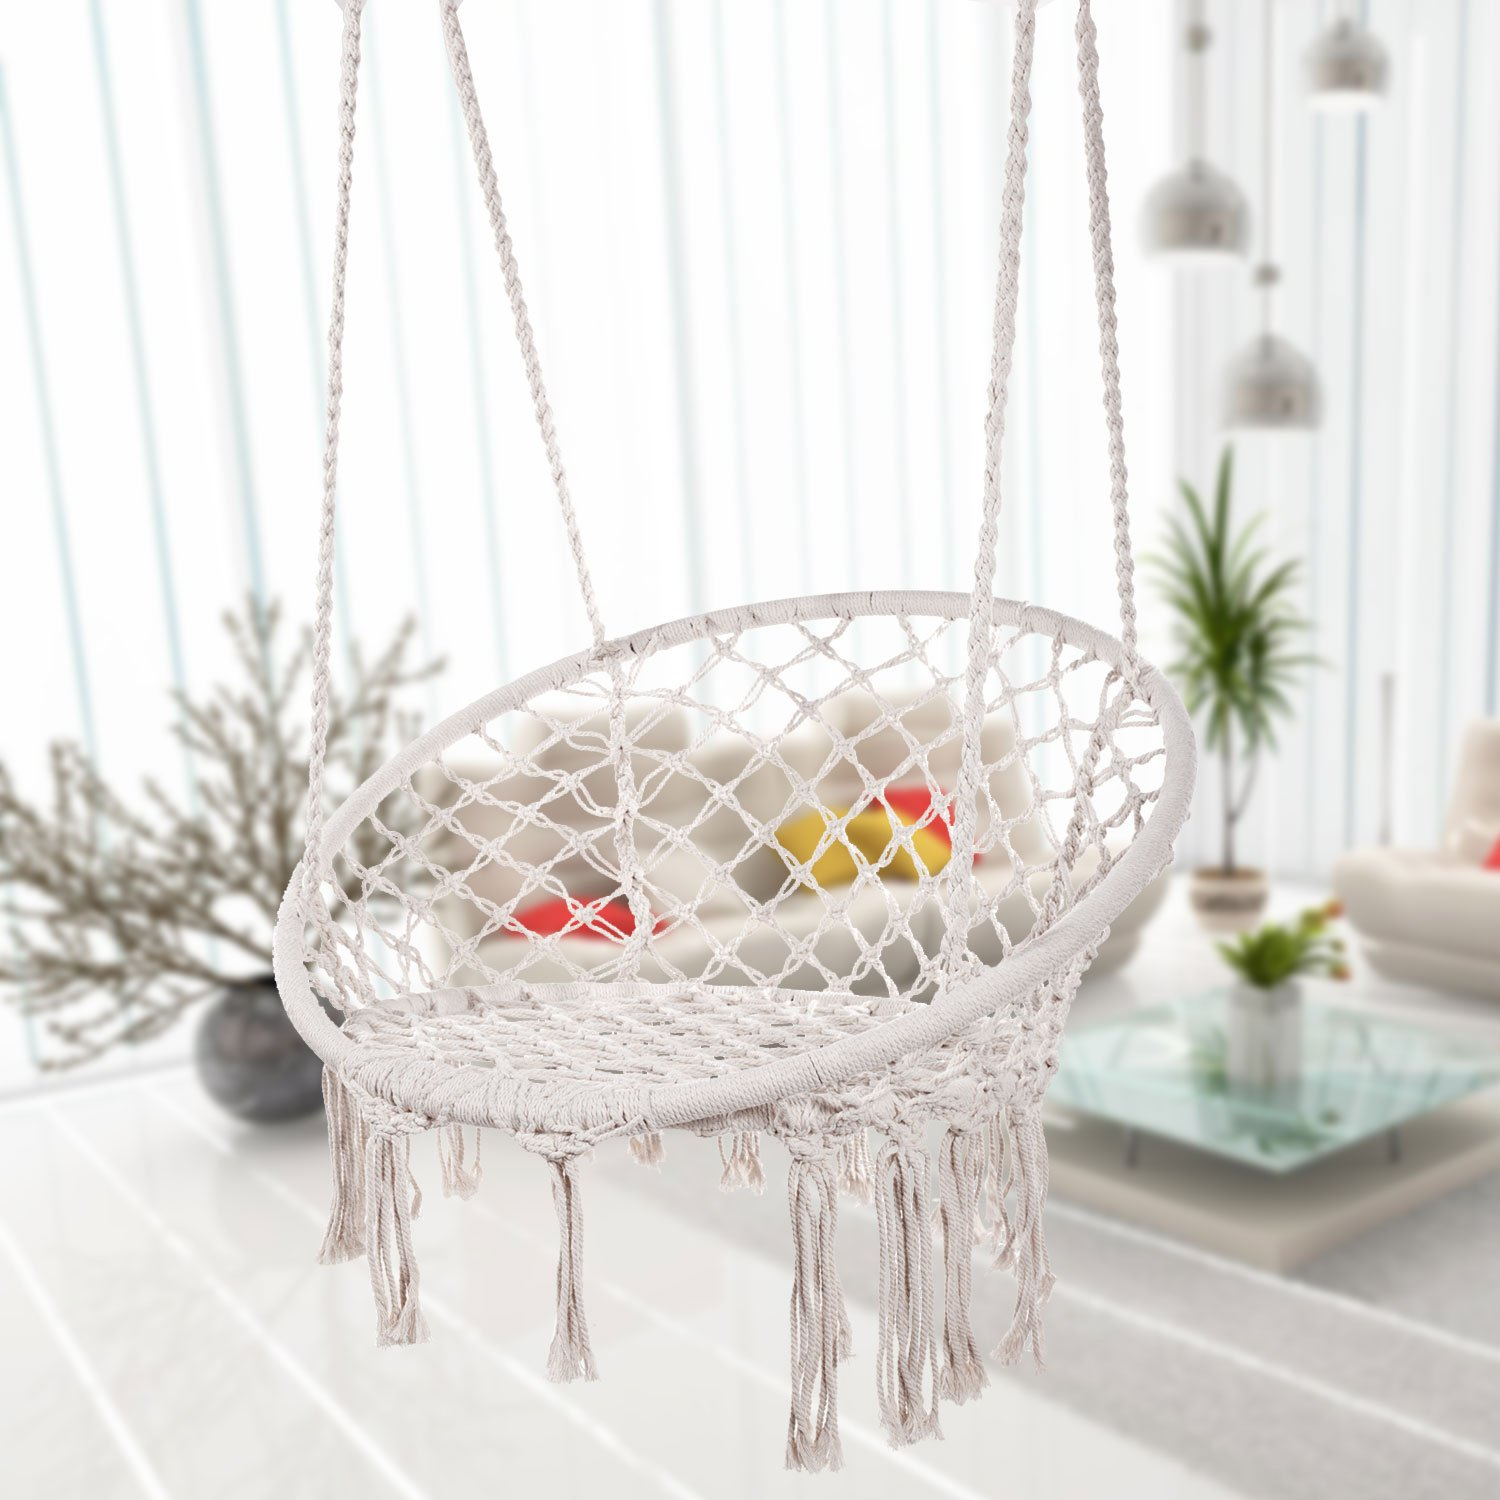 Bormart Hammock Chair Macrame Swing, Hanging Lounge Mesh Chair Durable Cotton Rope Swing for Bedroom, Patio, Garden, Deck, Yard, Max Capacity 265 Lbs (White)